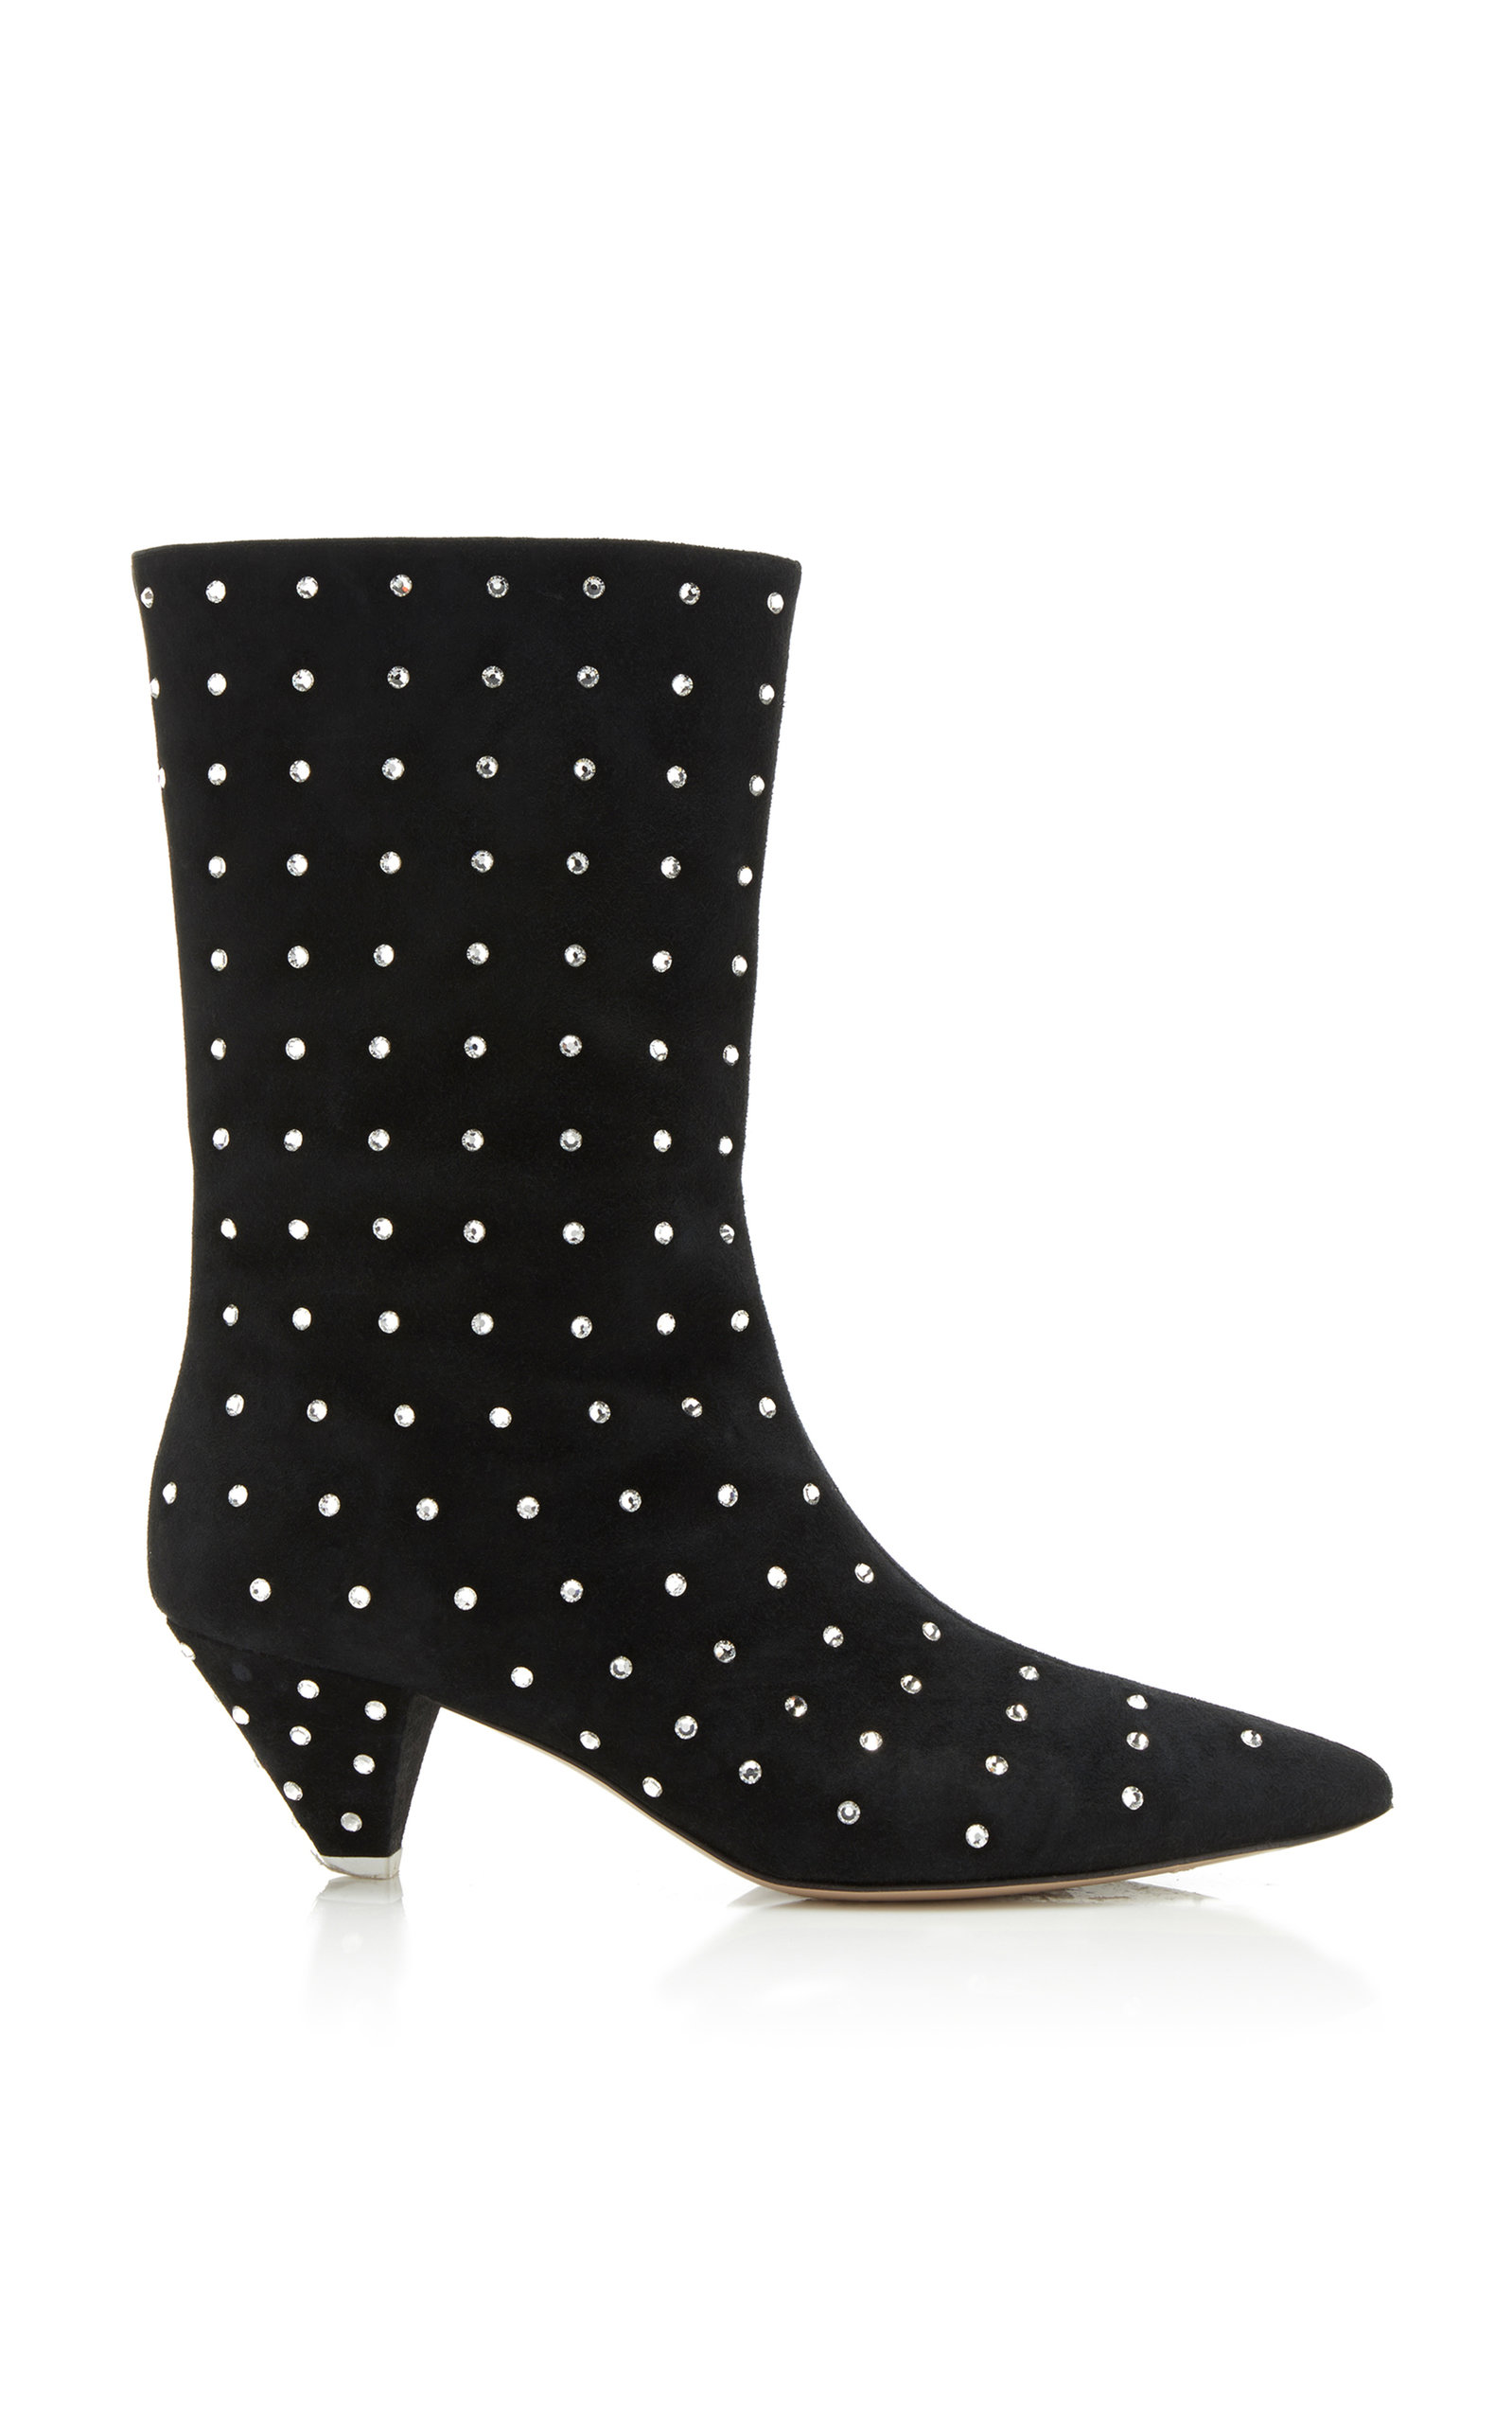 Crystal-Embellished Calf-Length Boots in Black